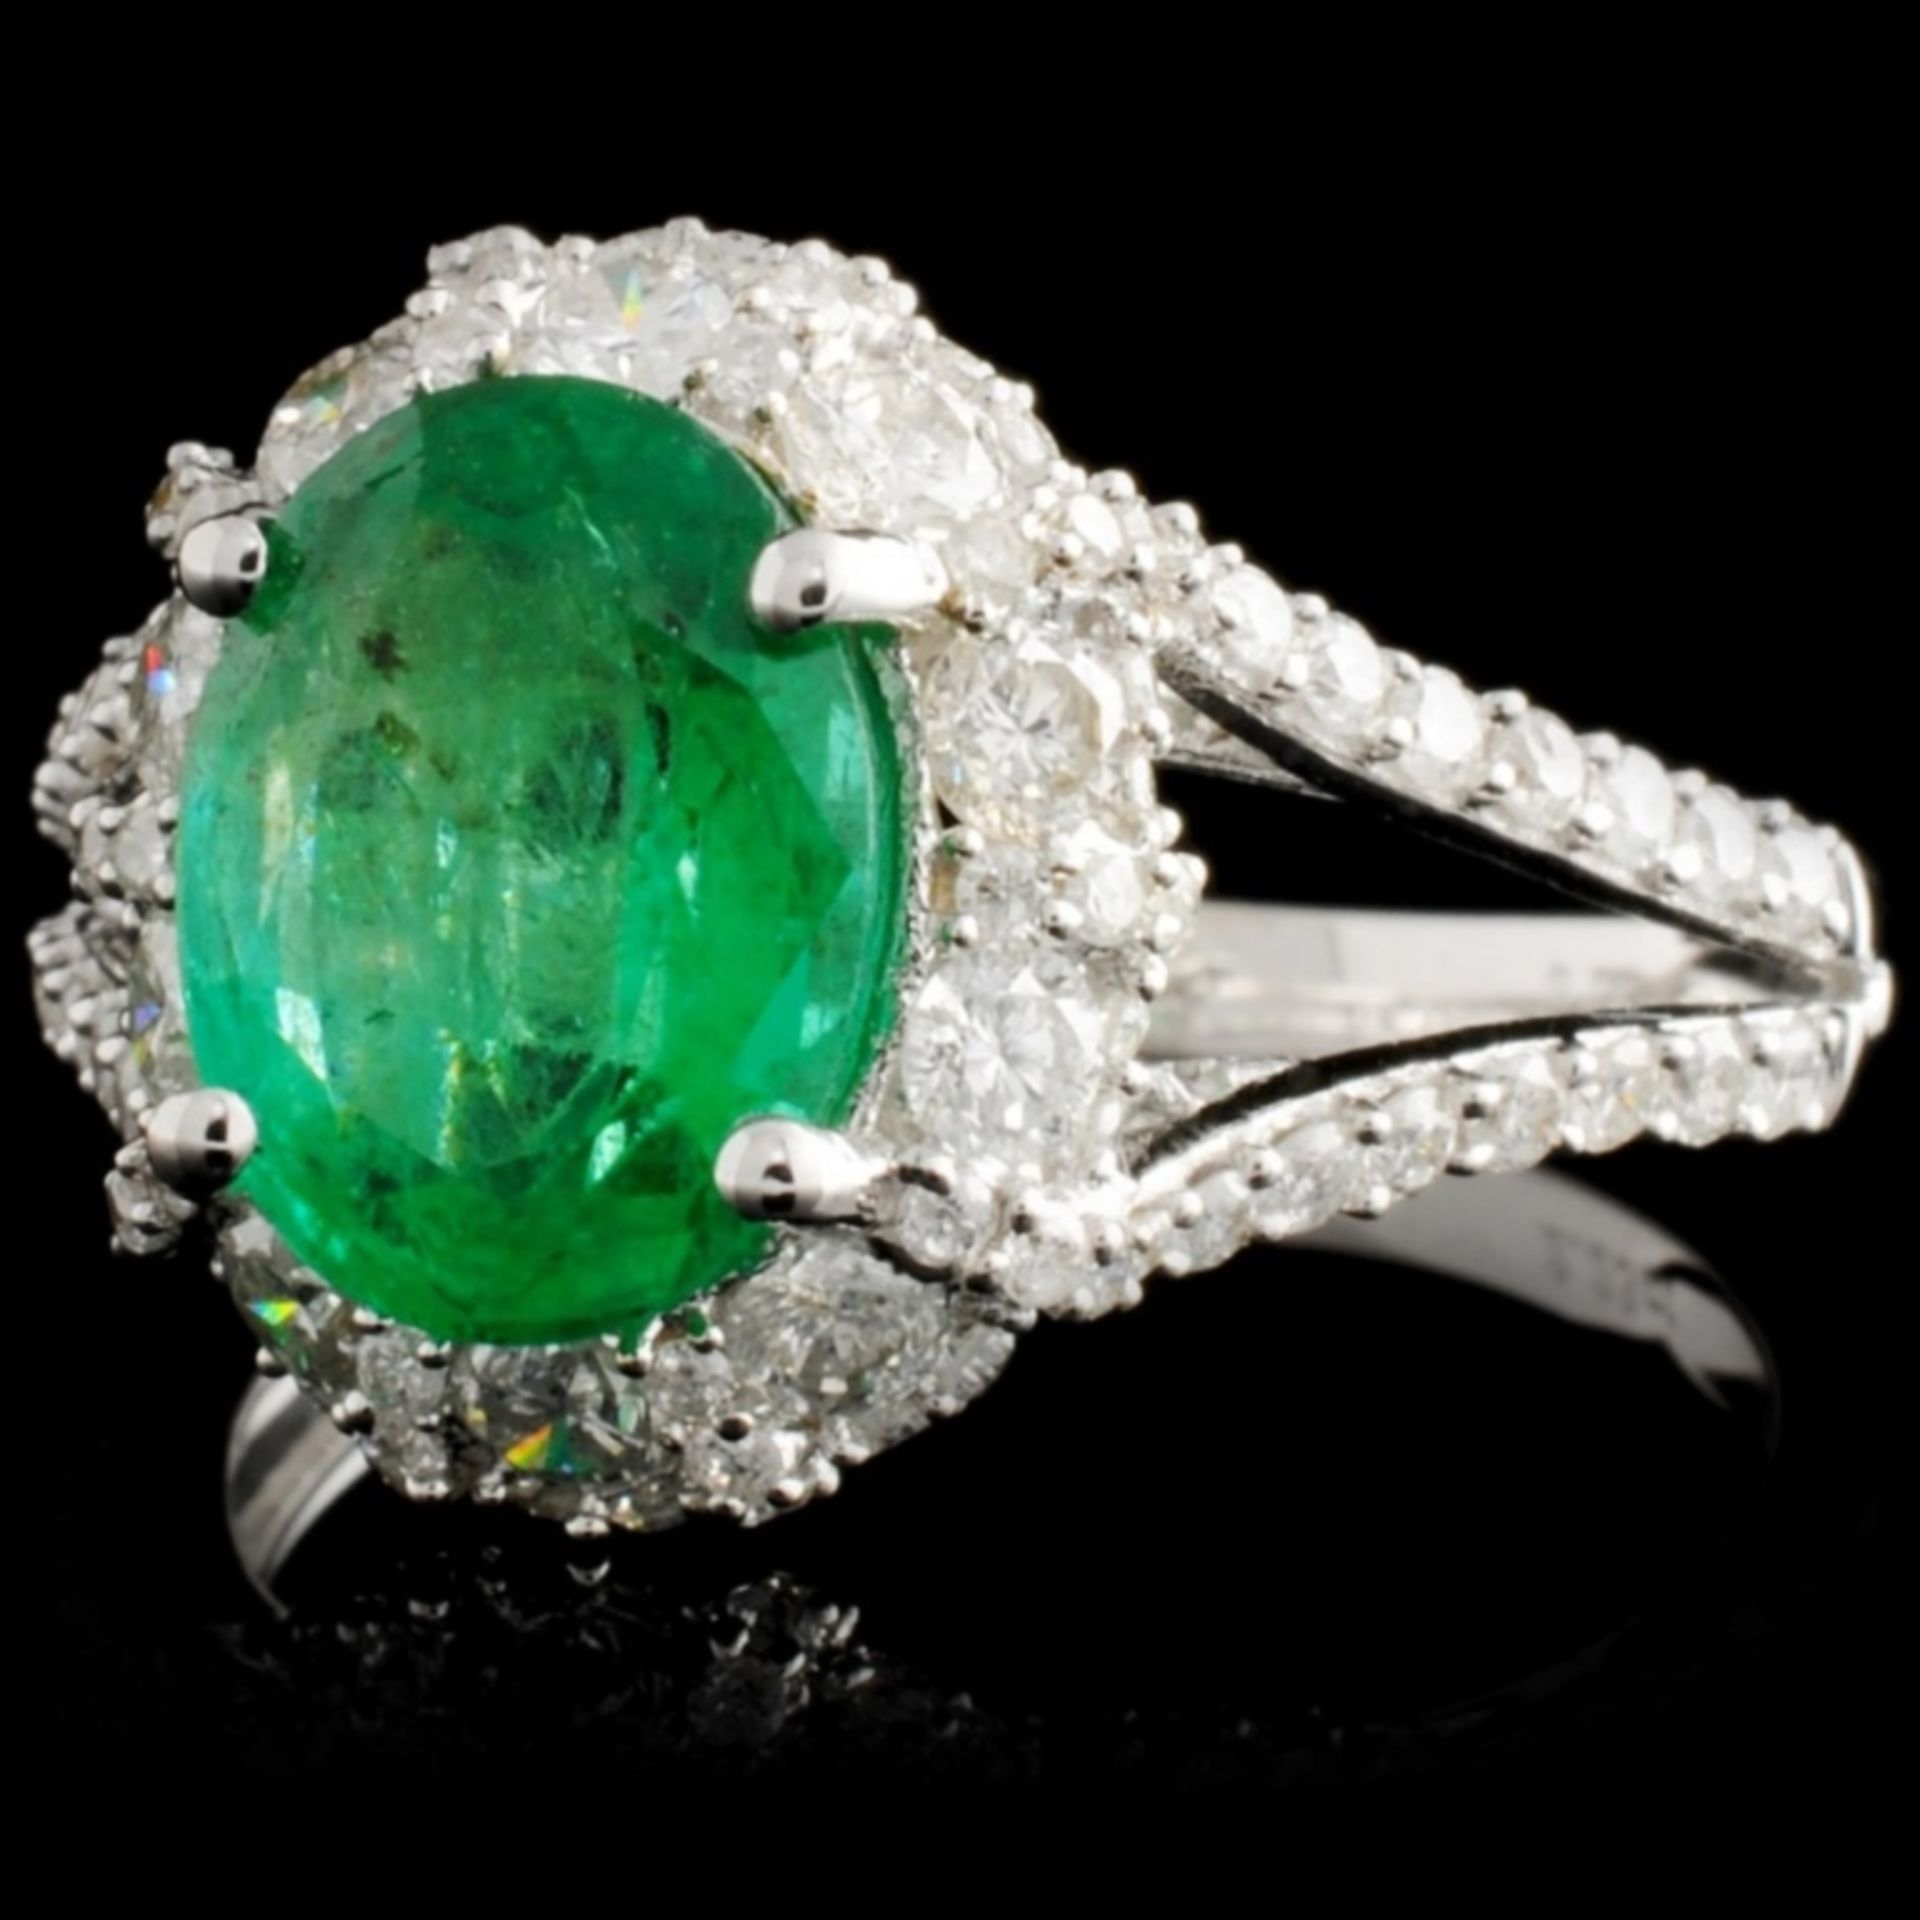 18K White Gold 2.25ct Emerald & 1.17ctw Diamond Ri - Image 2 of 4